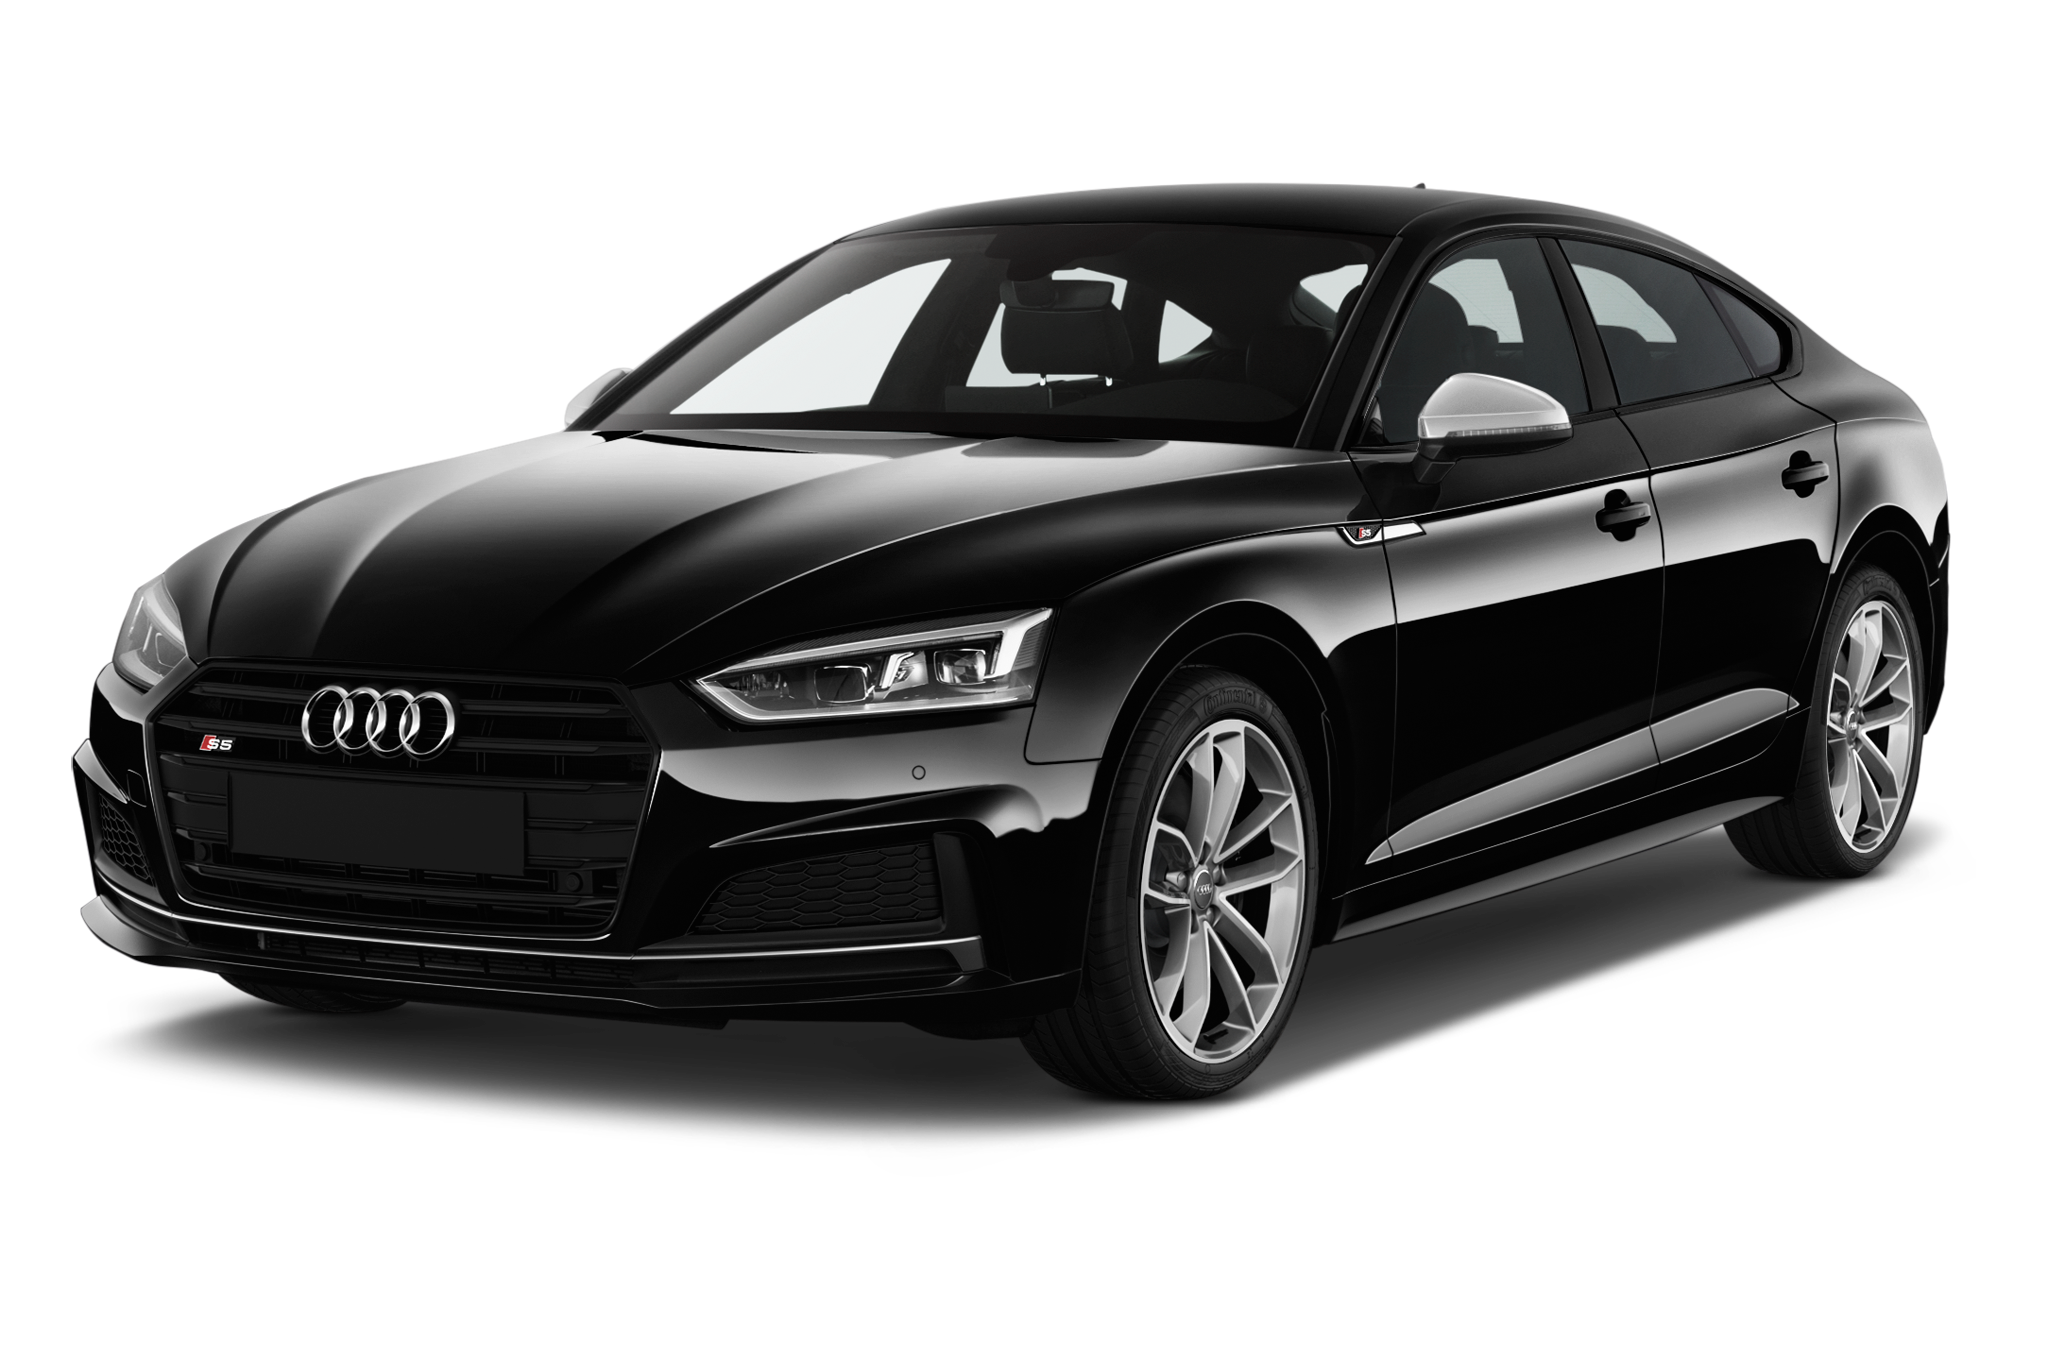 audi s7 leasing angebote f r privat gewerbe ohne anzahlung. Black Bedroom Furniture Sets. Home Design Ideas